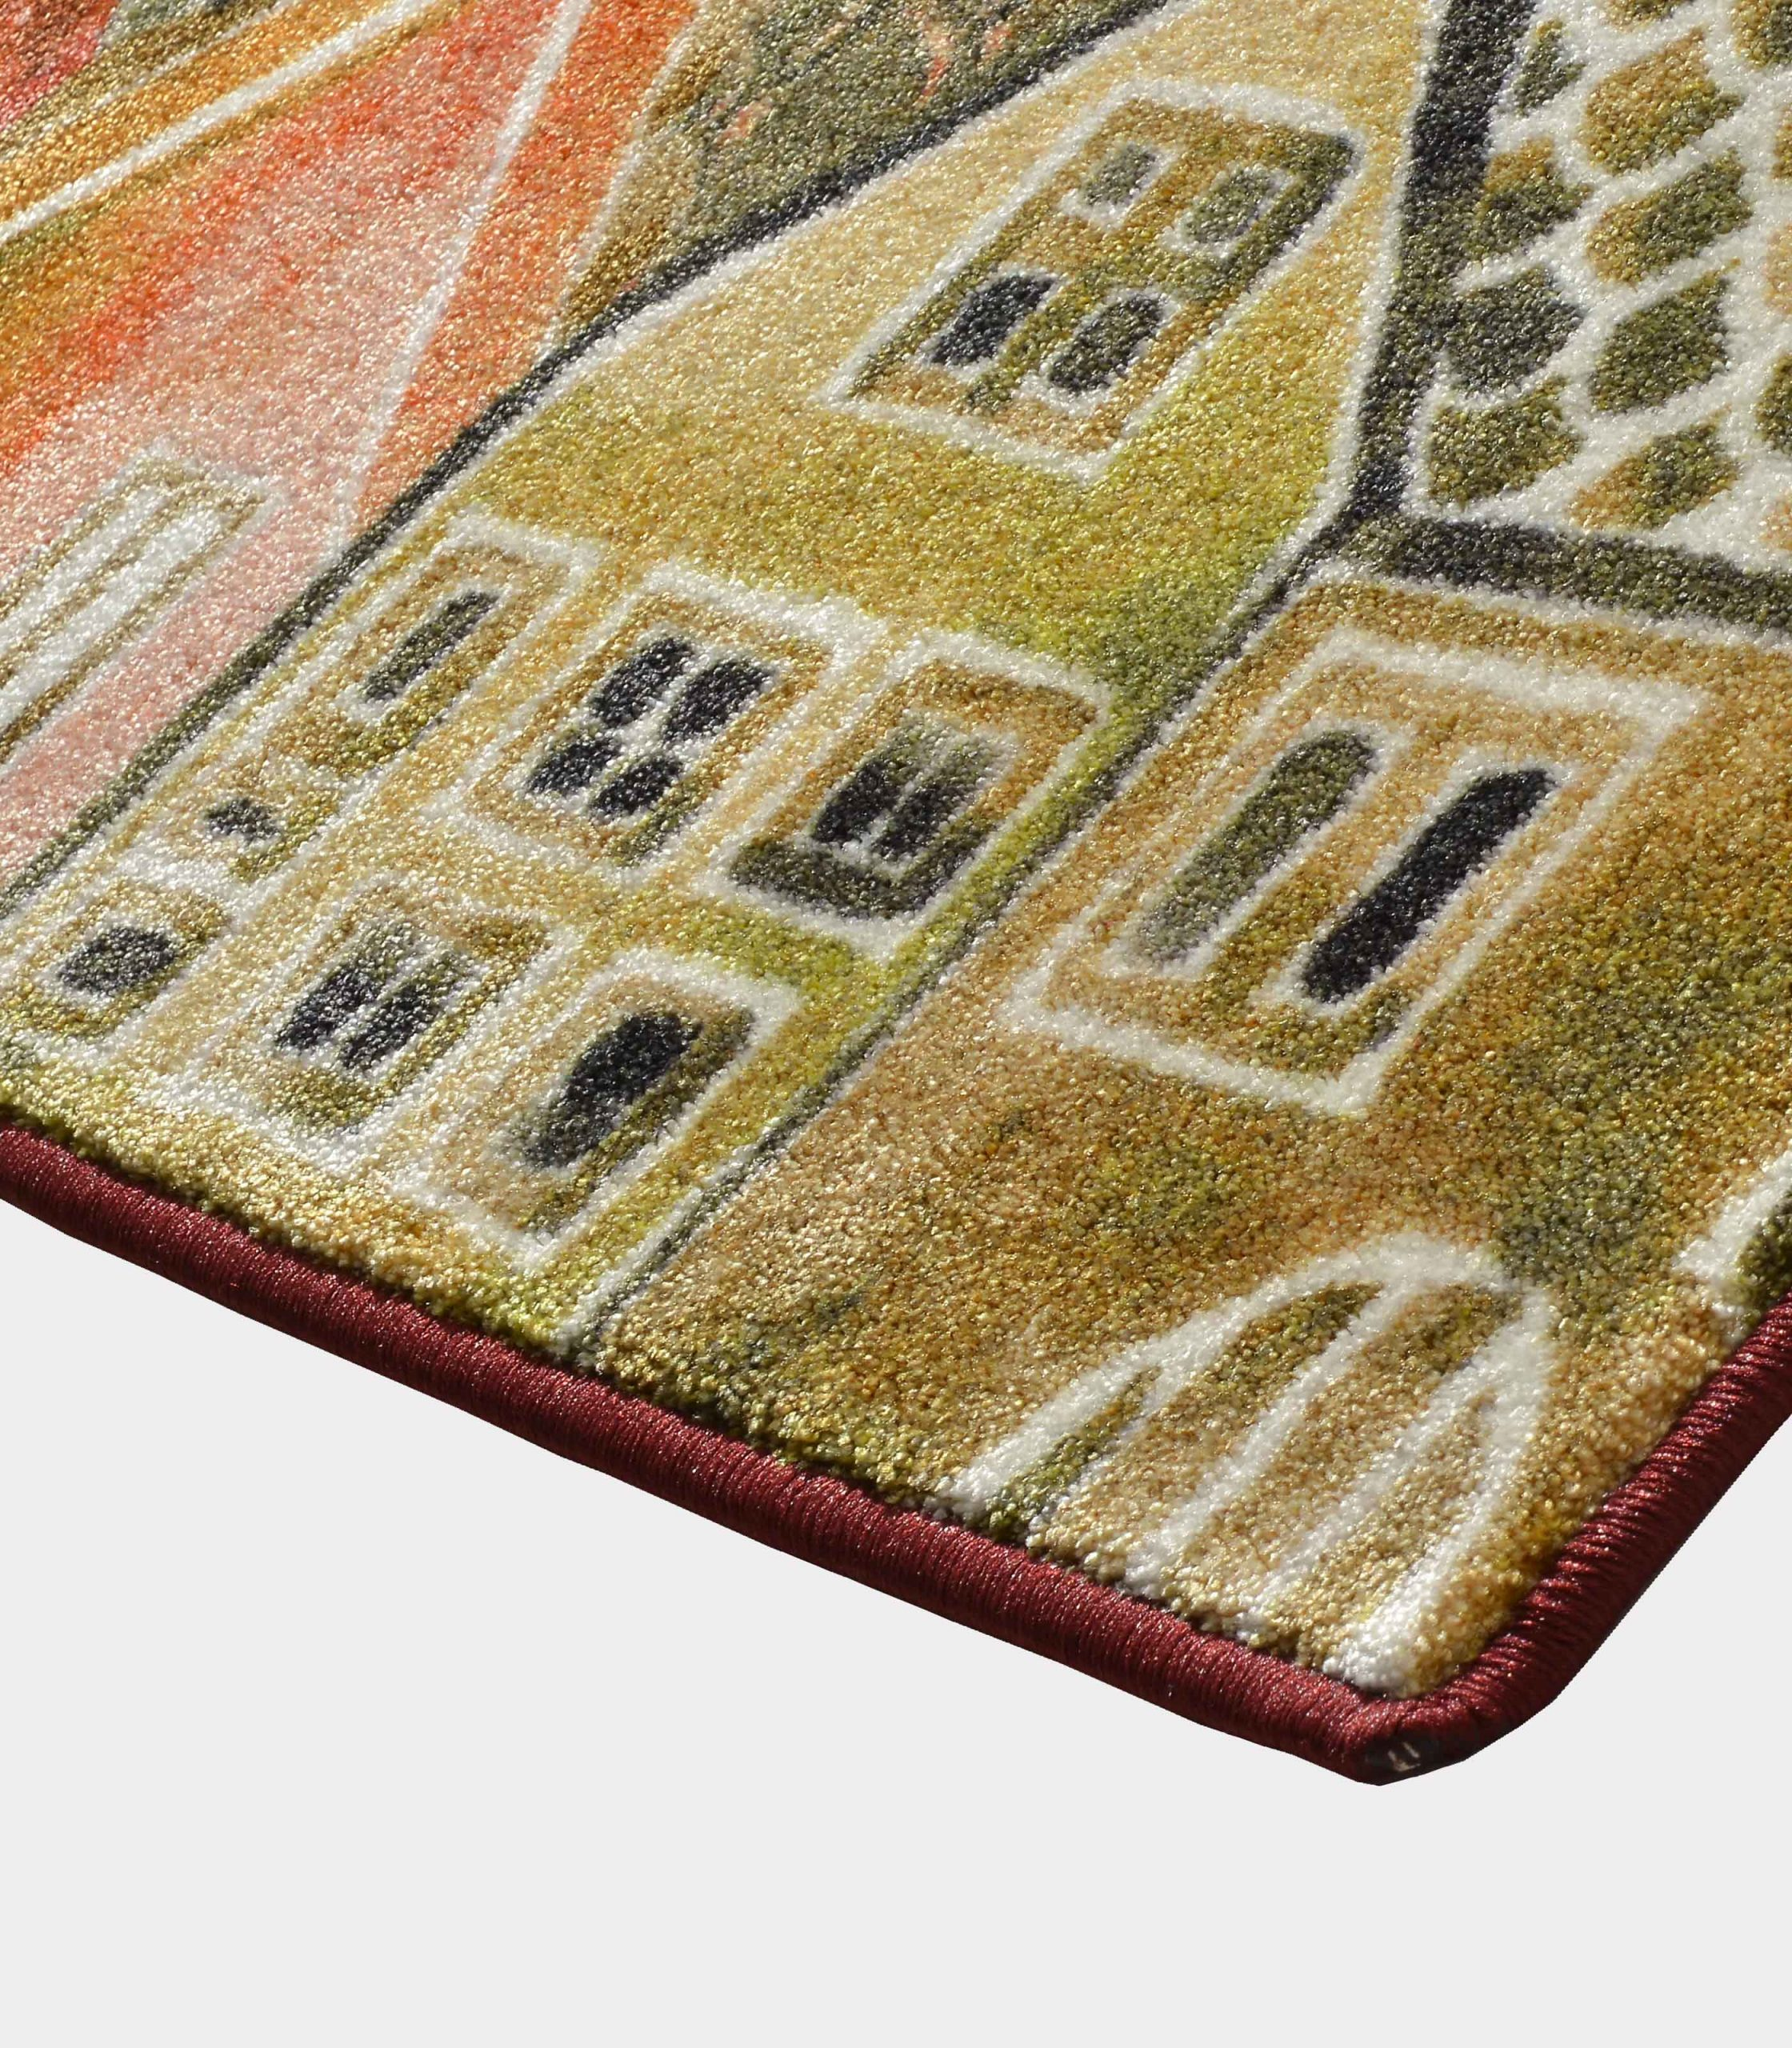 red notturno fabric rug with printed designs loopo milano design C